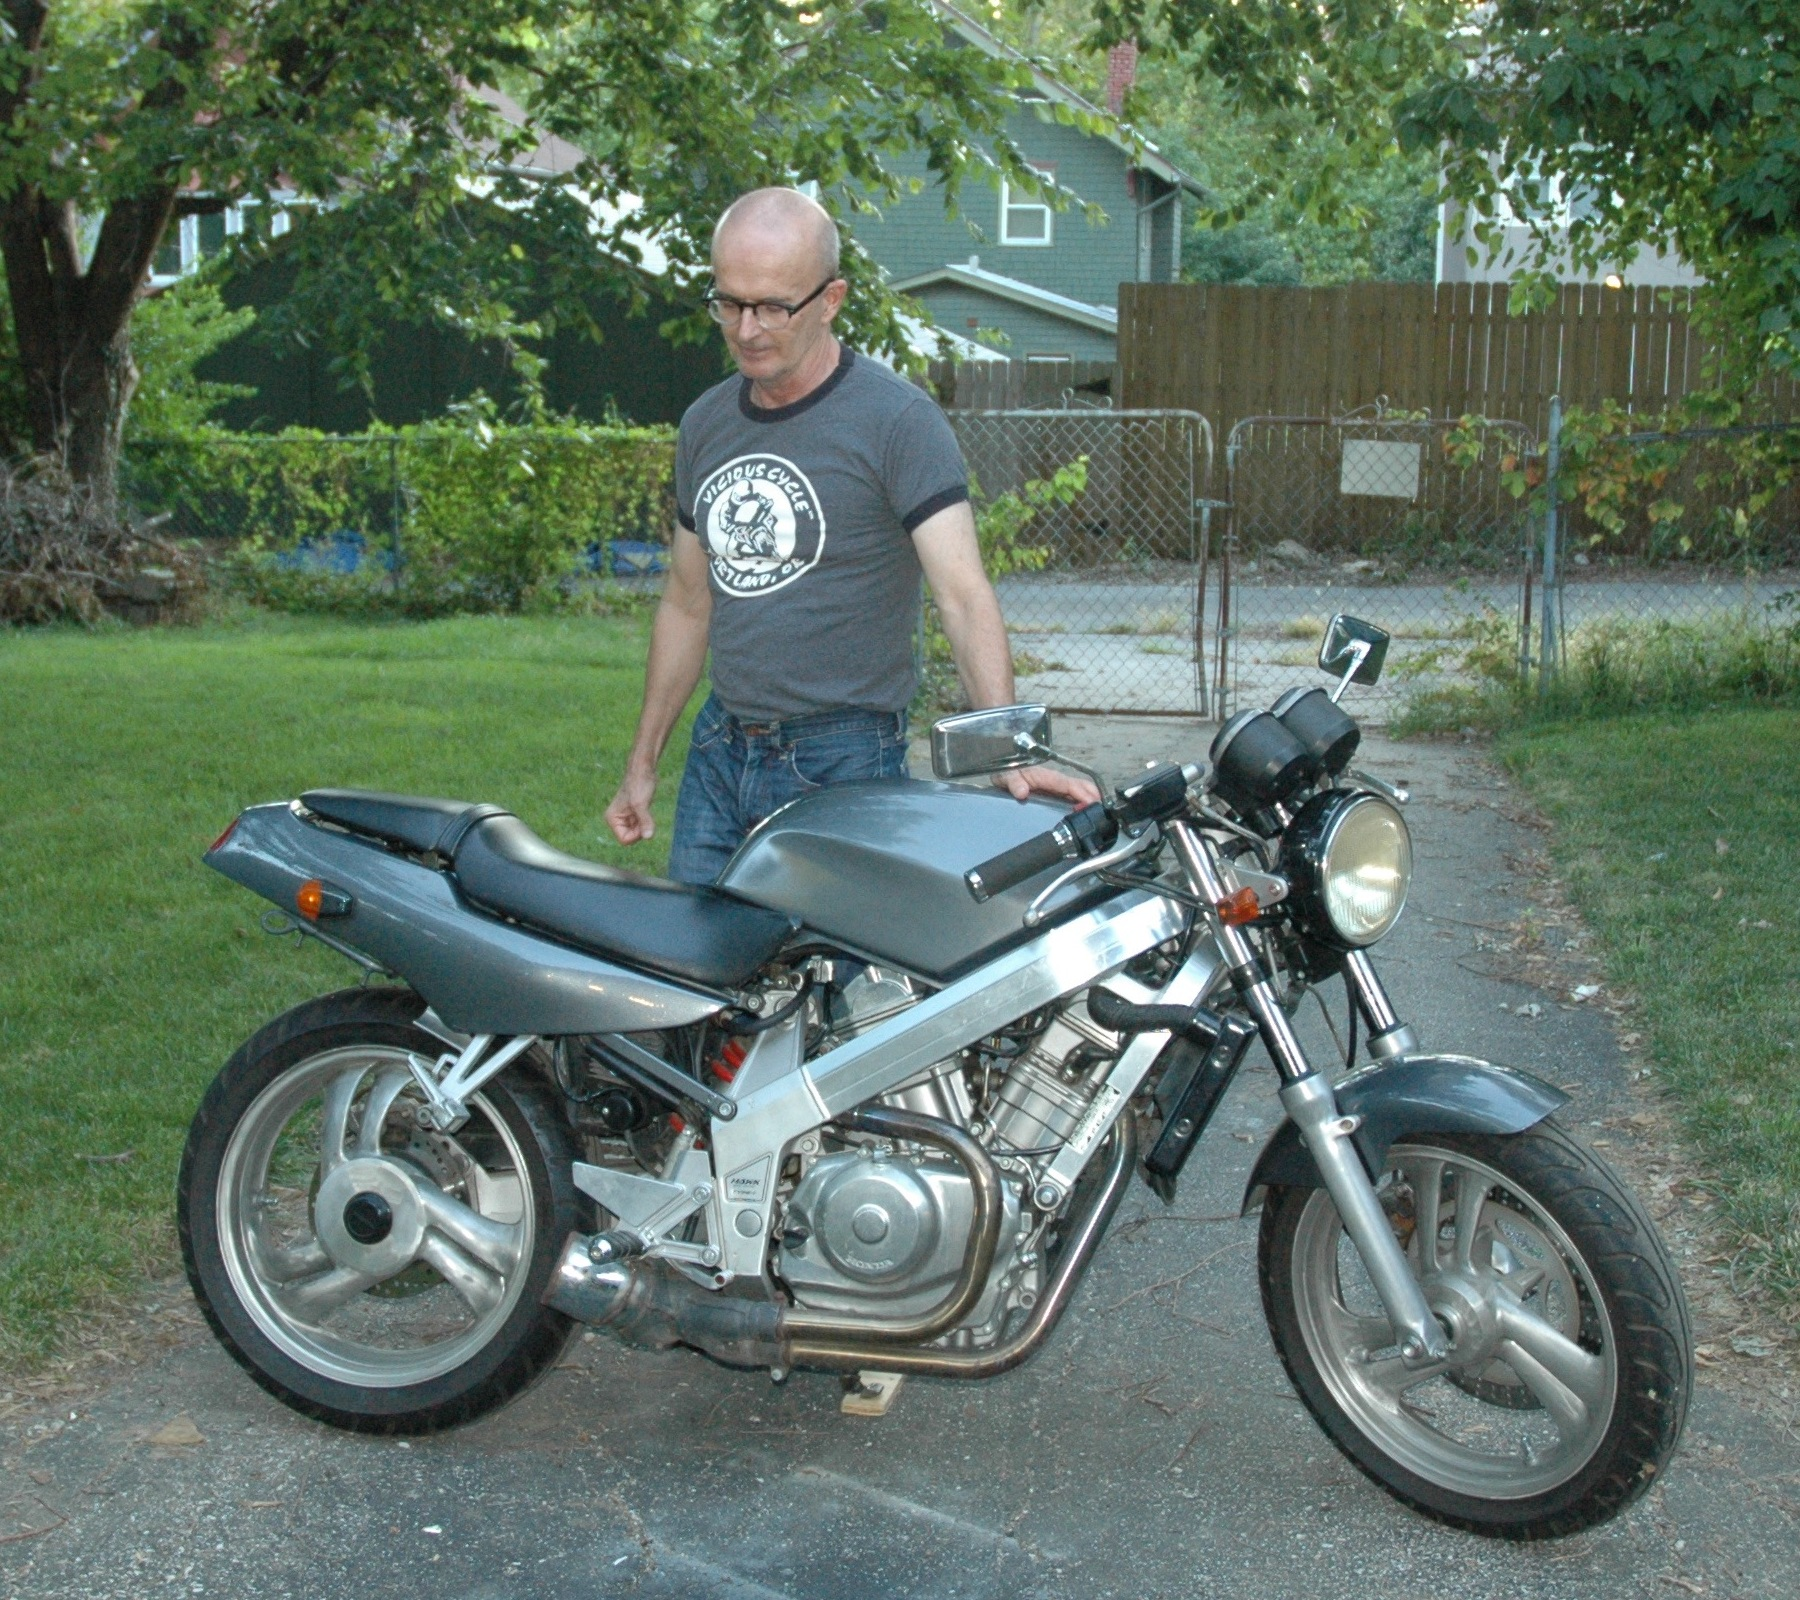 The joy of Craigslist: This is not the motorcycle he expected to buy